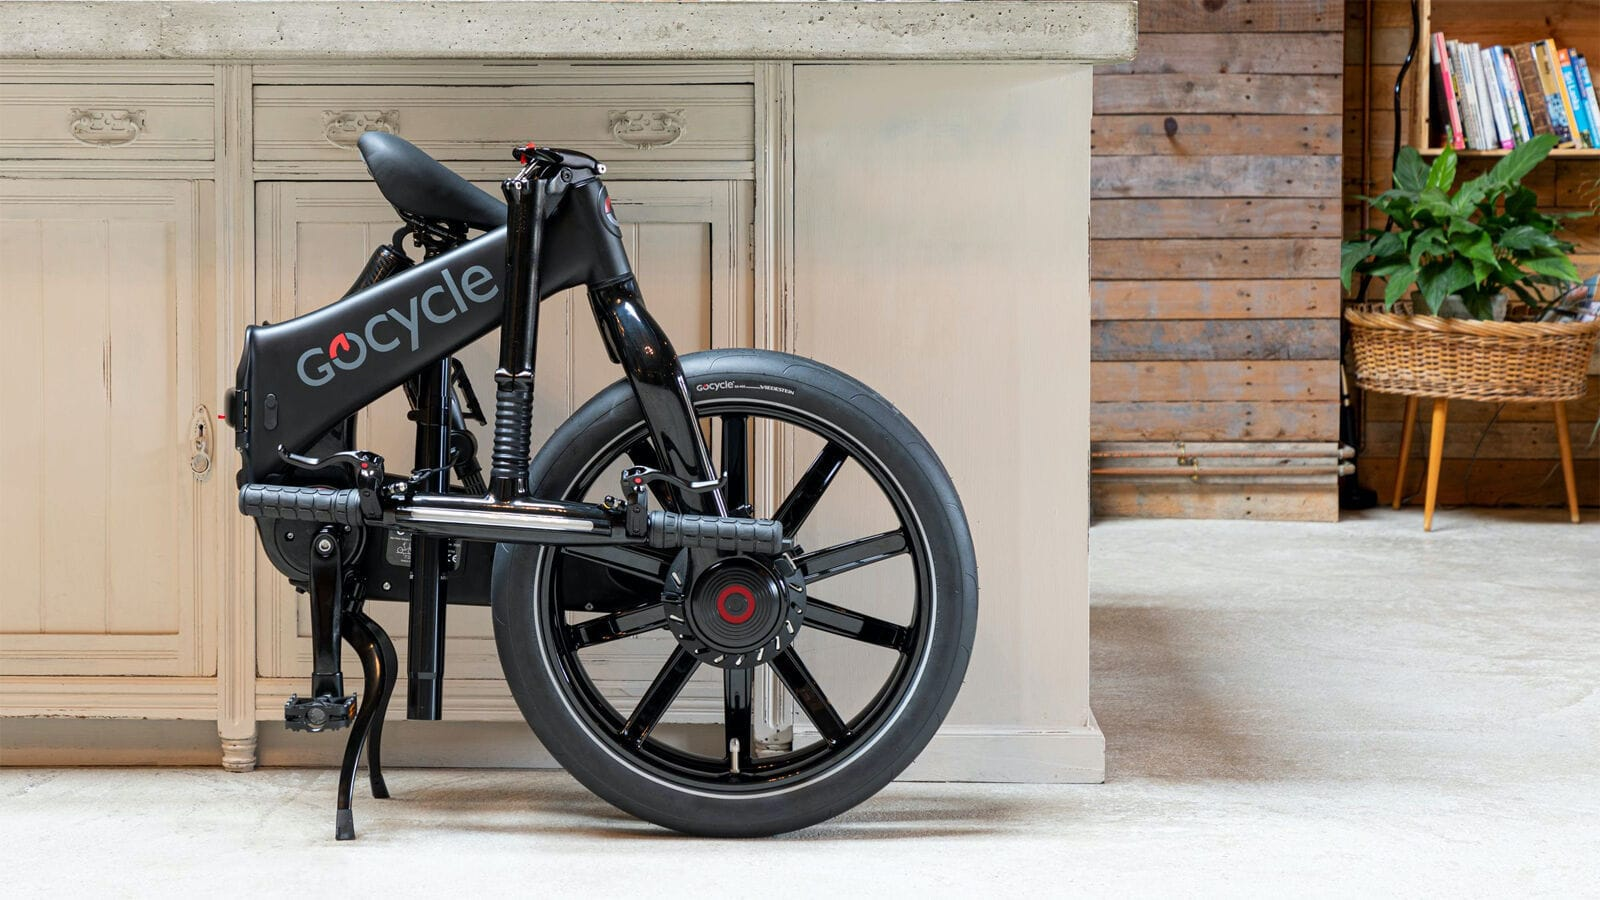 Gocycle G4 Foldable eBike Series boasts the G4drive electric motor & USB charging port